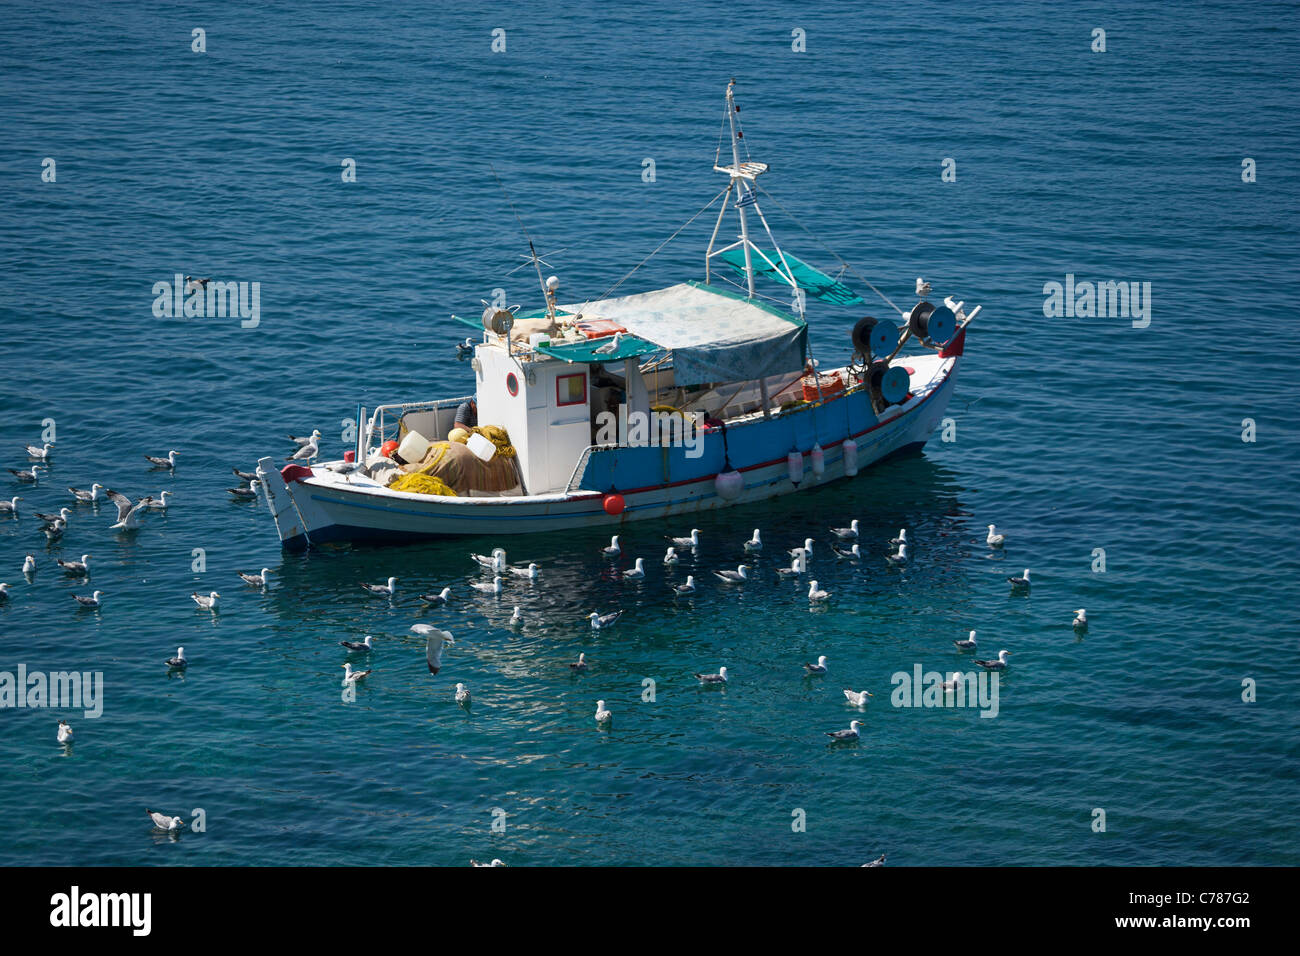 Fishing boat in harbour, Molyvos, Lesbos, Lesvos, Greece - Stock Image